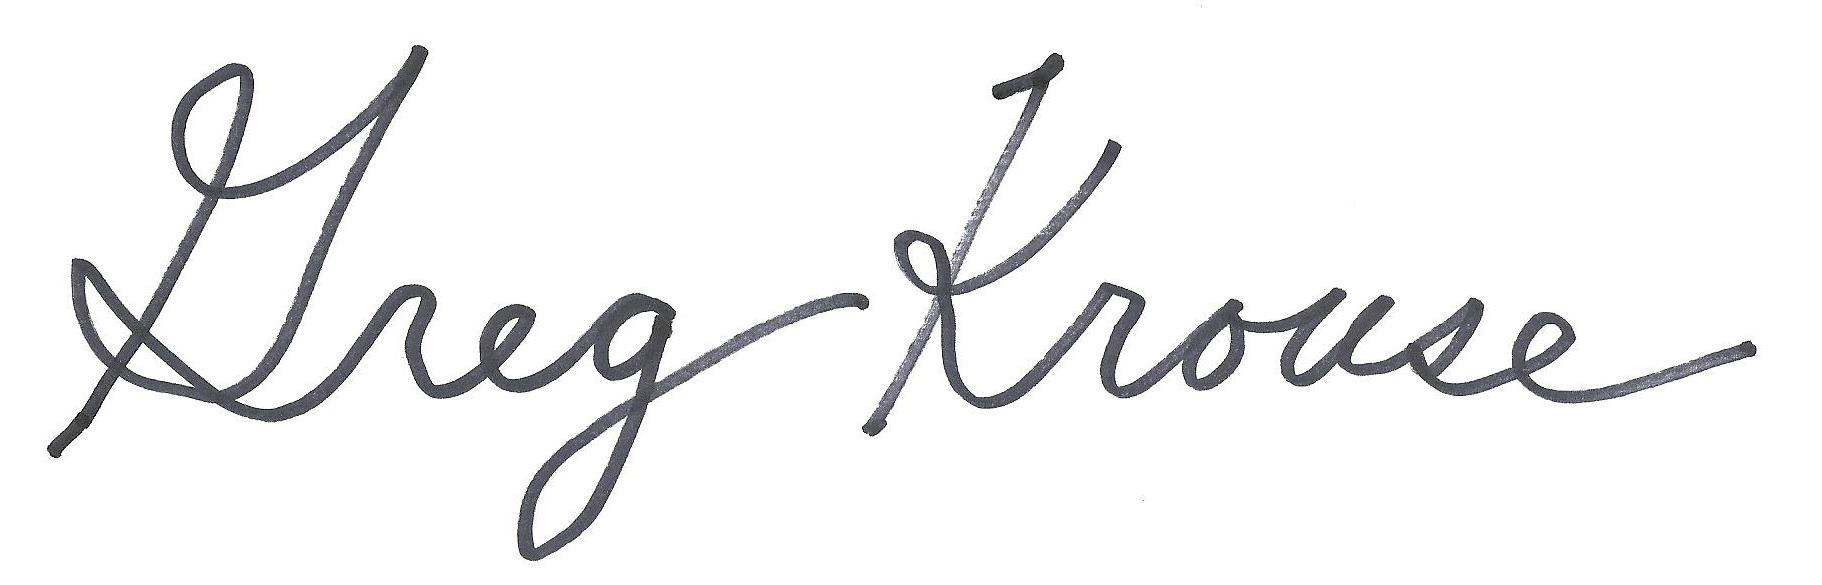 gregory krouse's Signature